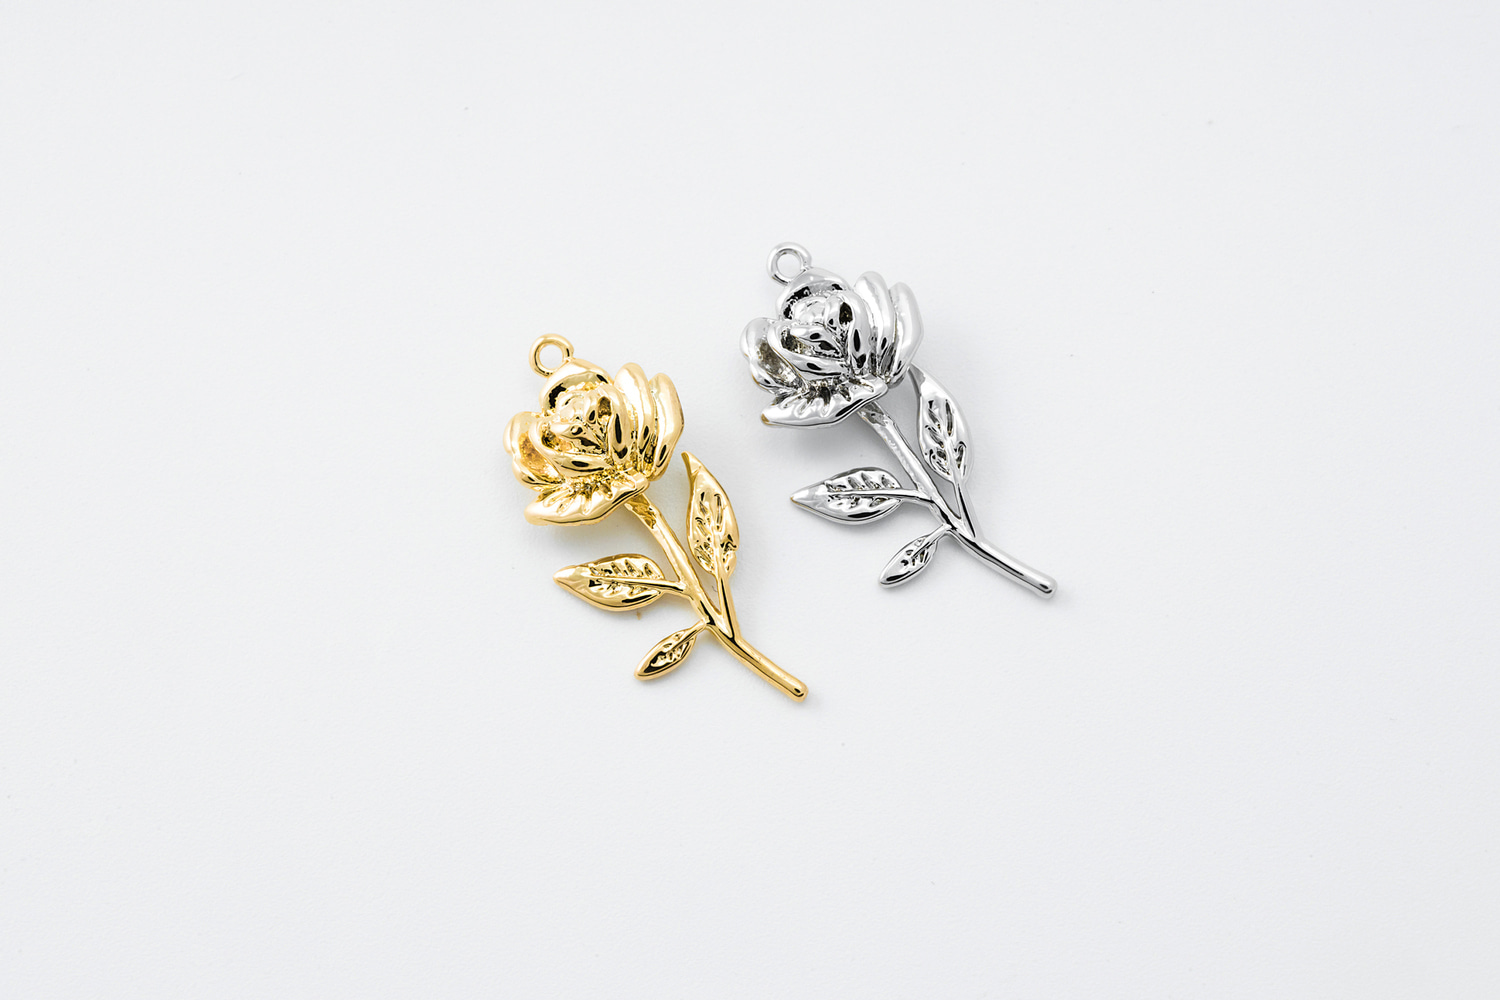 [P3-VC1] Rose charm, Brass, Nickel free, Wedding jewelry, Wedding accessories, Flower pendant, Dainty flower charm, 1 pcs (P3-G14, P3-G14R)